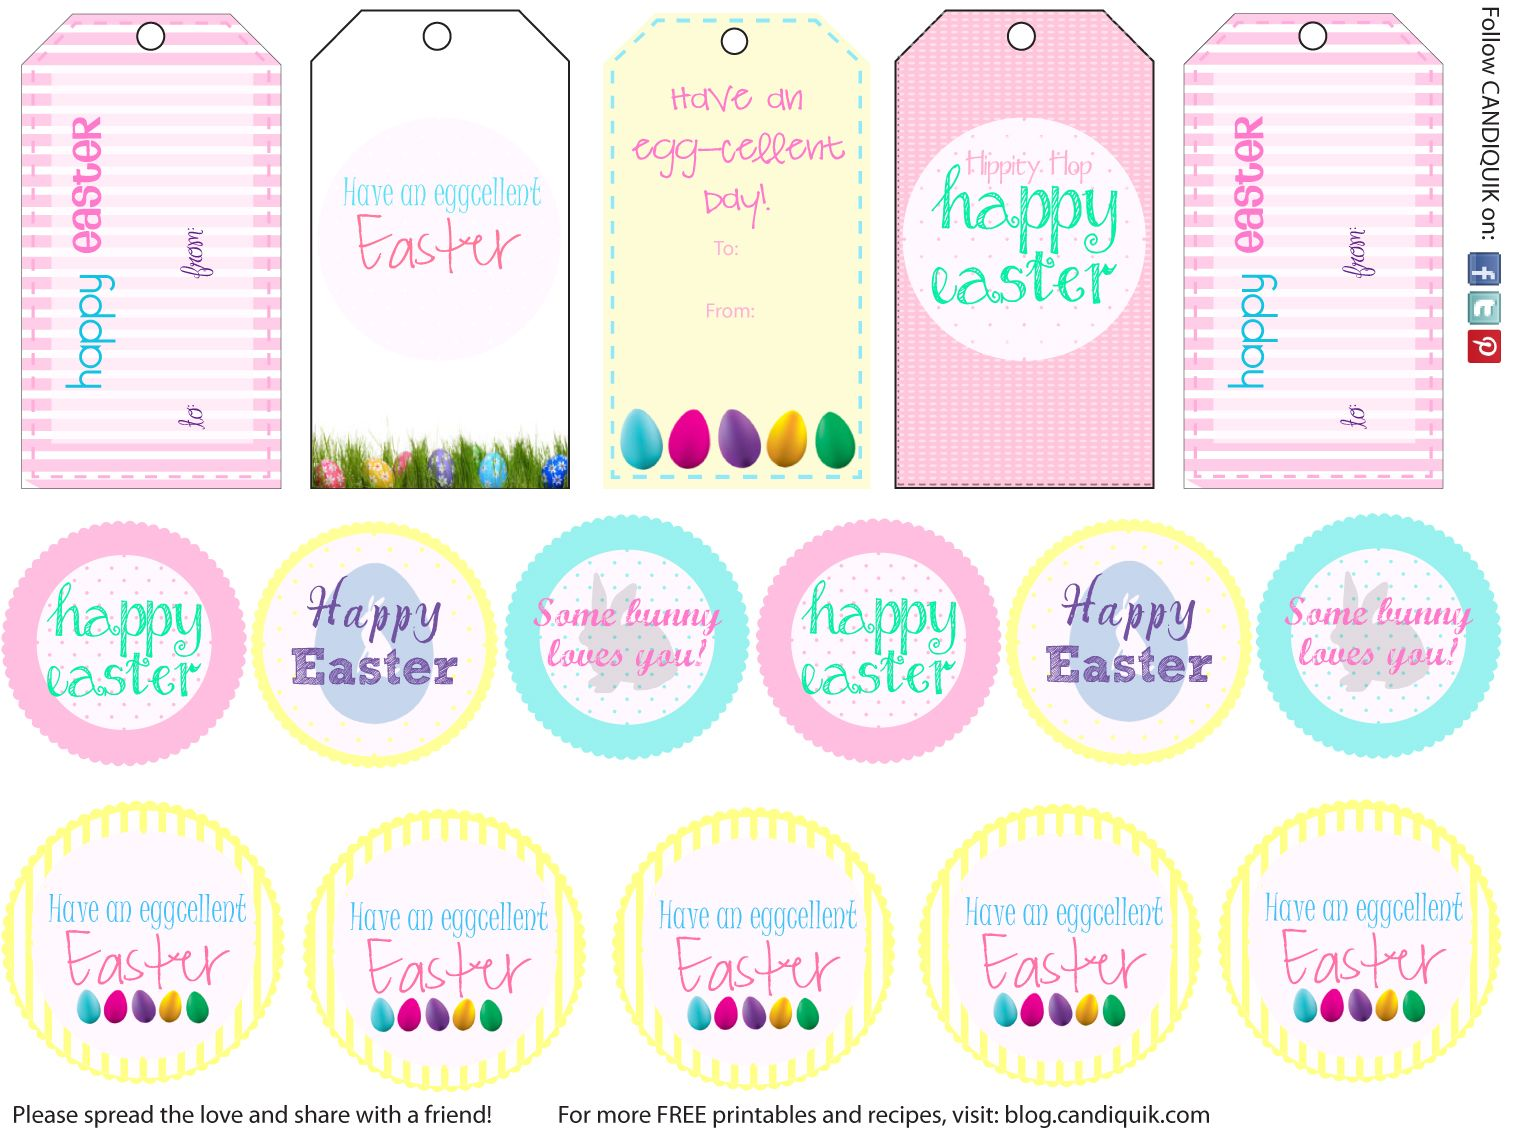 Free printables free printables free christmas printables and vintage easter tags free christmas printables from miss candiquik great for cake pops negle Image collections